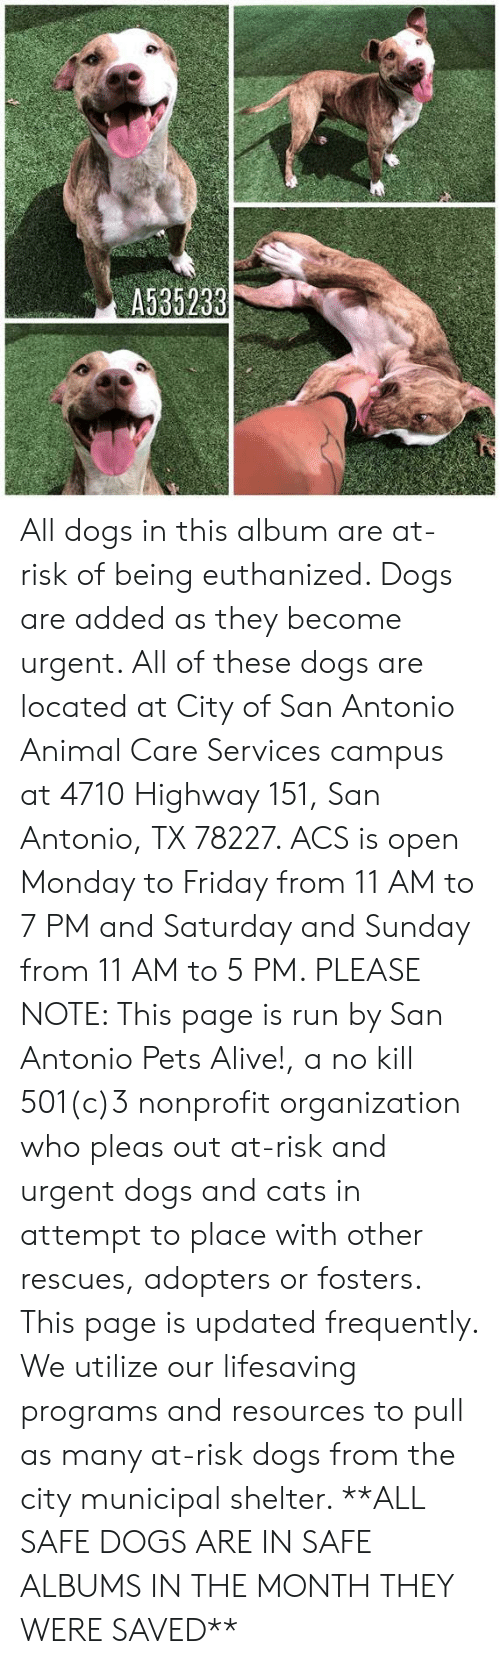 Alive, Cats, and Dogs: A535233 All dogs in this album are at-risk of being euthanized.  Dogs are added as they become urgent.  All of these dogs are located at City of San Antonio Animal Care Services campus at 4710 Highway 151, San Antonio, TX 78227. ACS is open Monday to Friday from 11 AM to 7 PM and Saturday and Sunday from 11 AM to 5 PM.   PLEASE NOTE: This page is run by San Antonio Pets Alive!, a no kill 501(c)3 nonprofit organization who pleas out at-risk and urgent dogs and cats in attempt to place with other rescues, adopters or fosters.   This page is updated frequently.  We utilize our lifesaving programs and resources to pull as many at-risk dogs from the city municipal shelter. **ALL SAFE DOGS ARE IN SAFE ALBUMS IN THE MONTH THEY WERE SAVED**